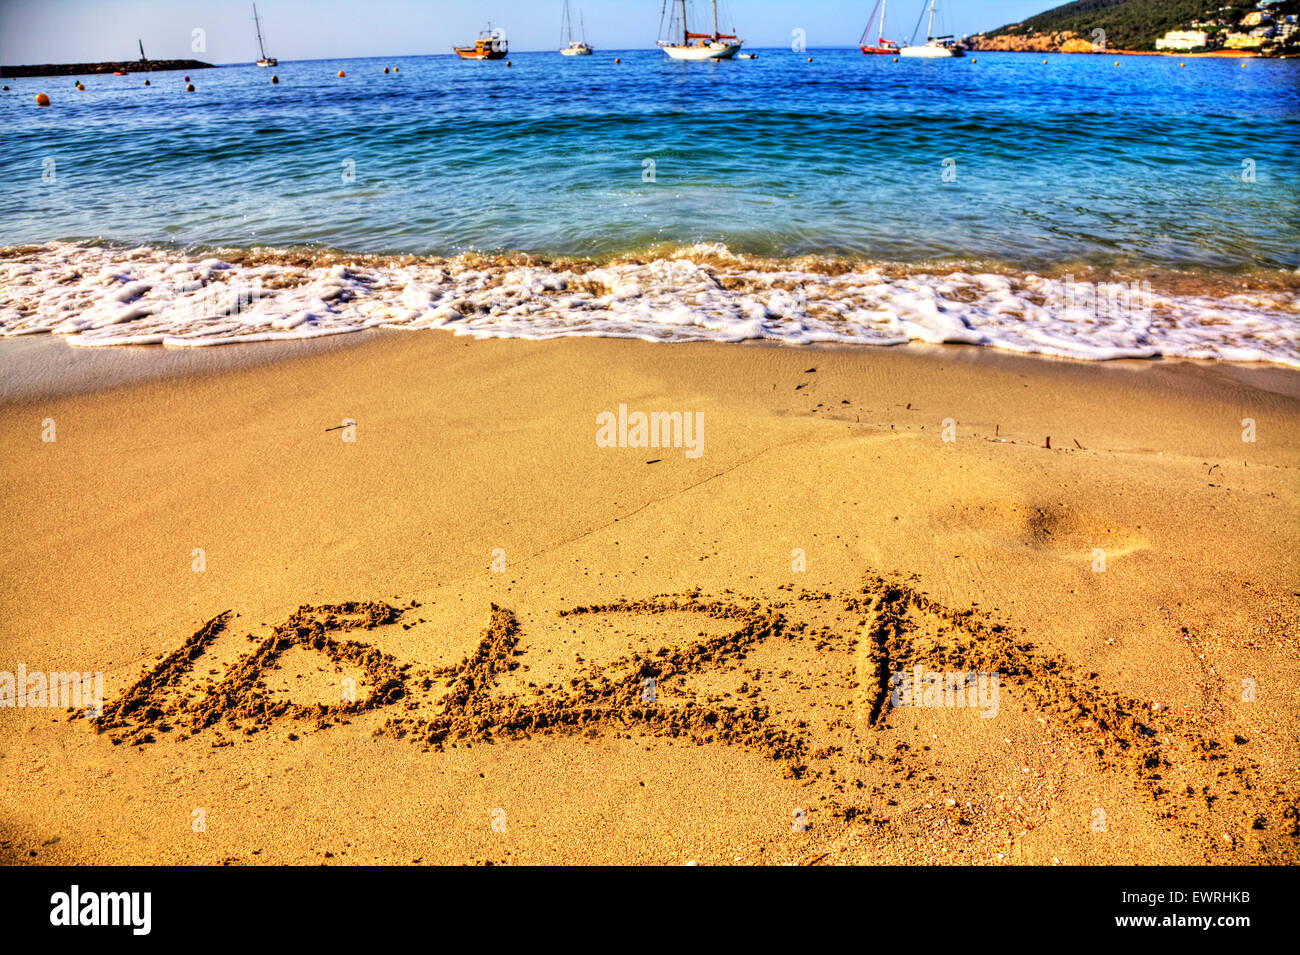 Ibiza word in sand written on beach resort sea coast coastline holiday getaway Spain Santa Eulalia Spanish summer - Stock Image